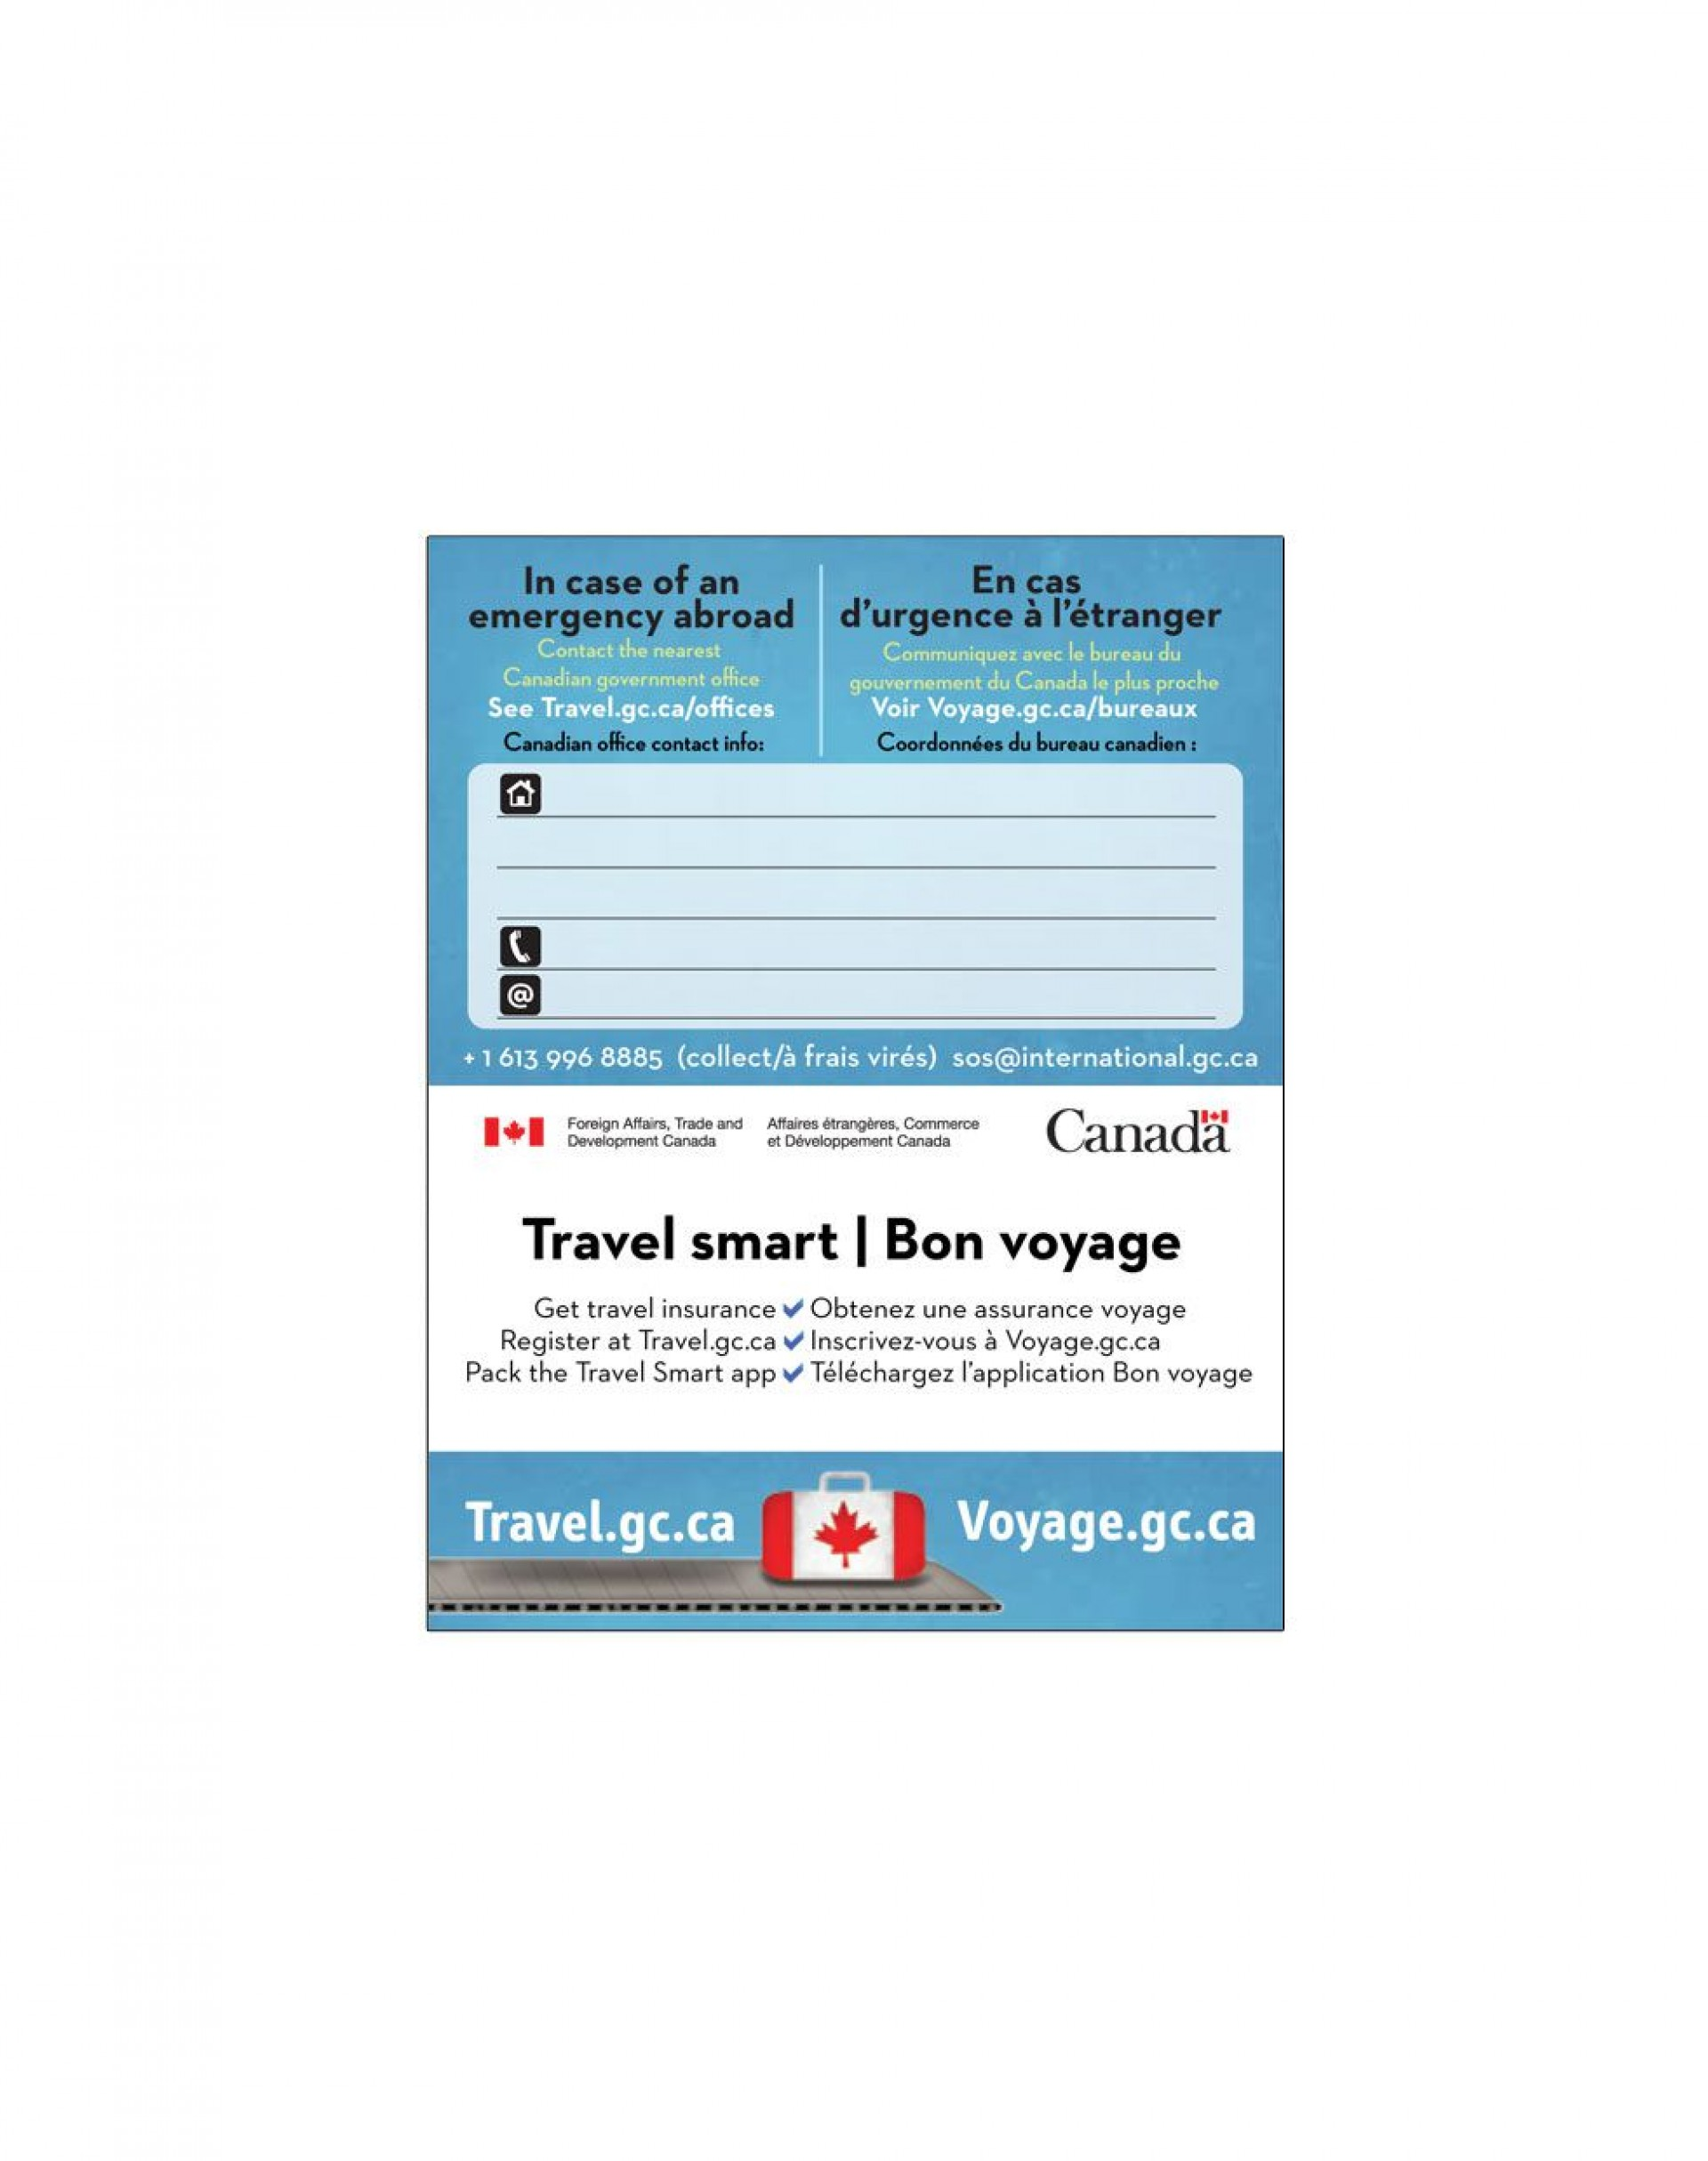 006 Remarkable Travel Emergency Contact Card Template Sample 1920